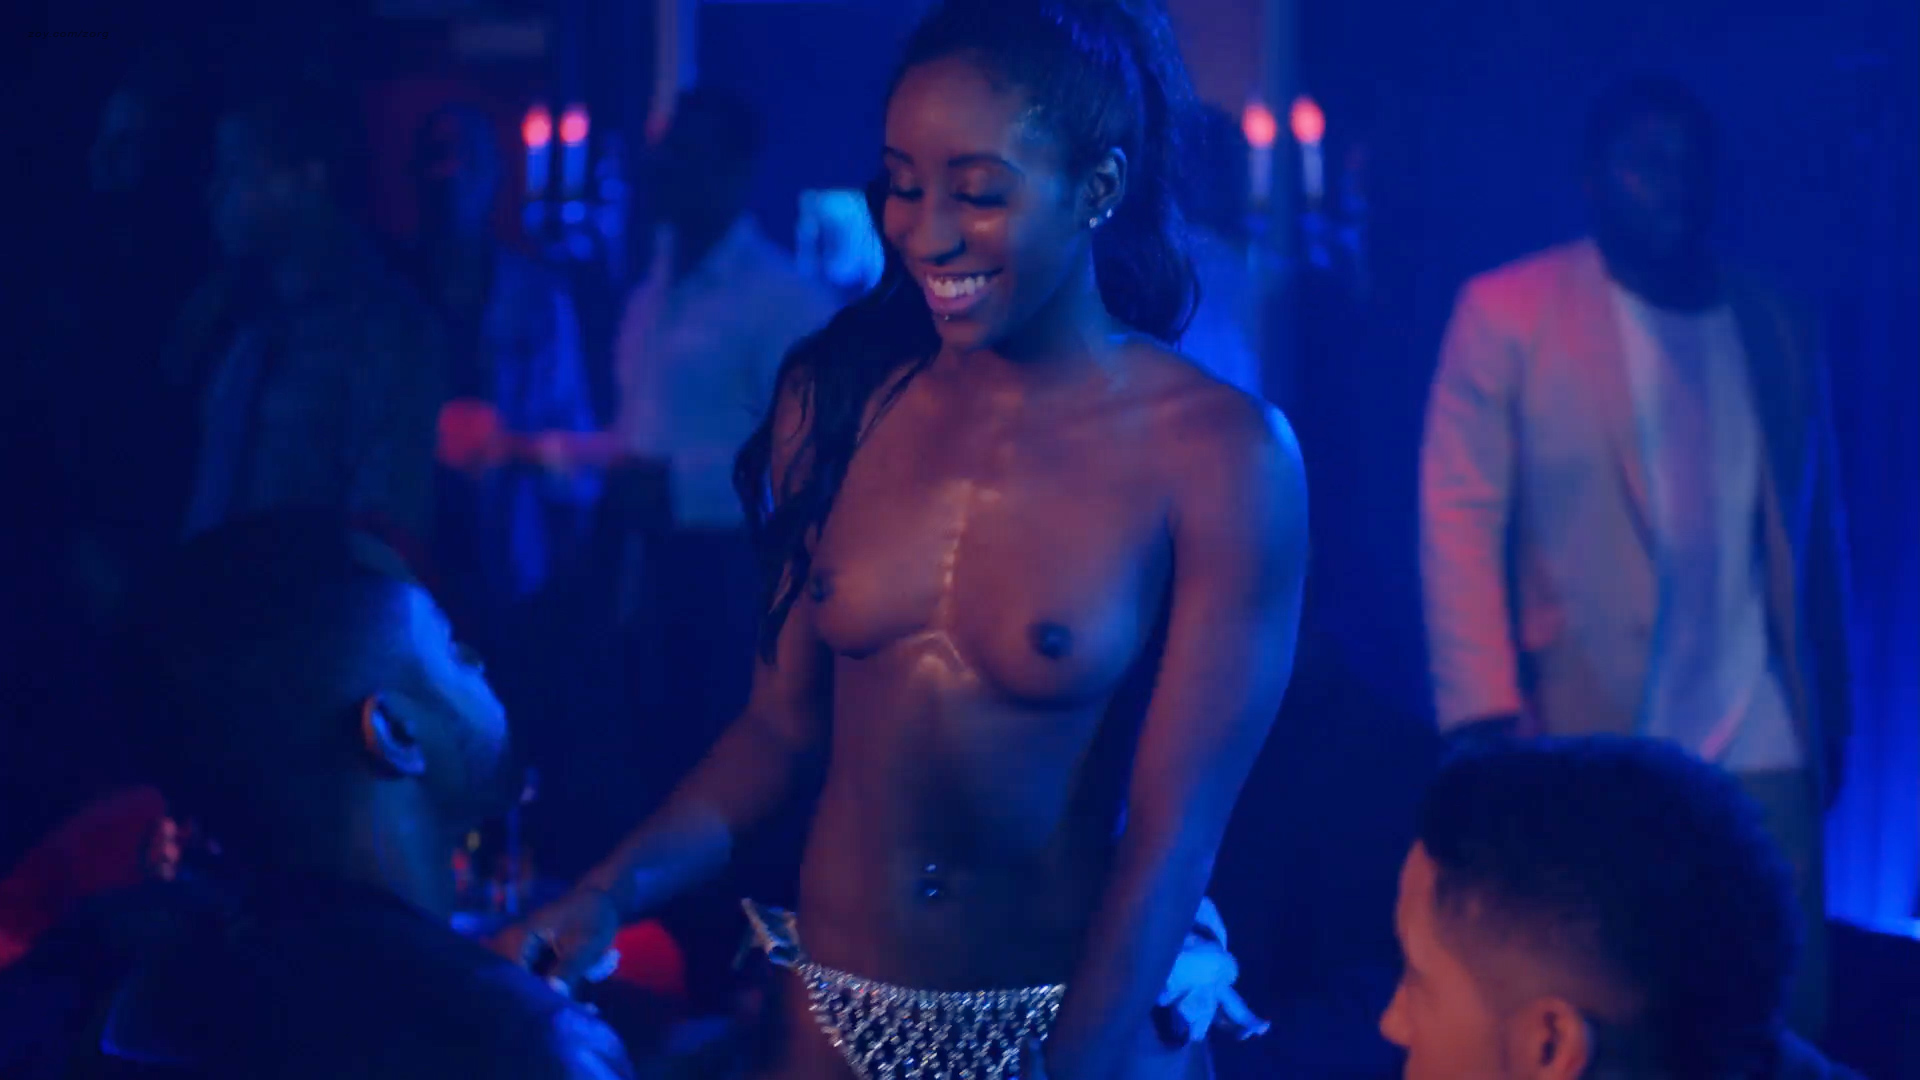 Nikki vanderdyz in insecure s01e08 - 1 part 10